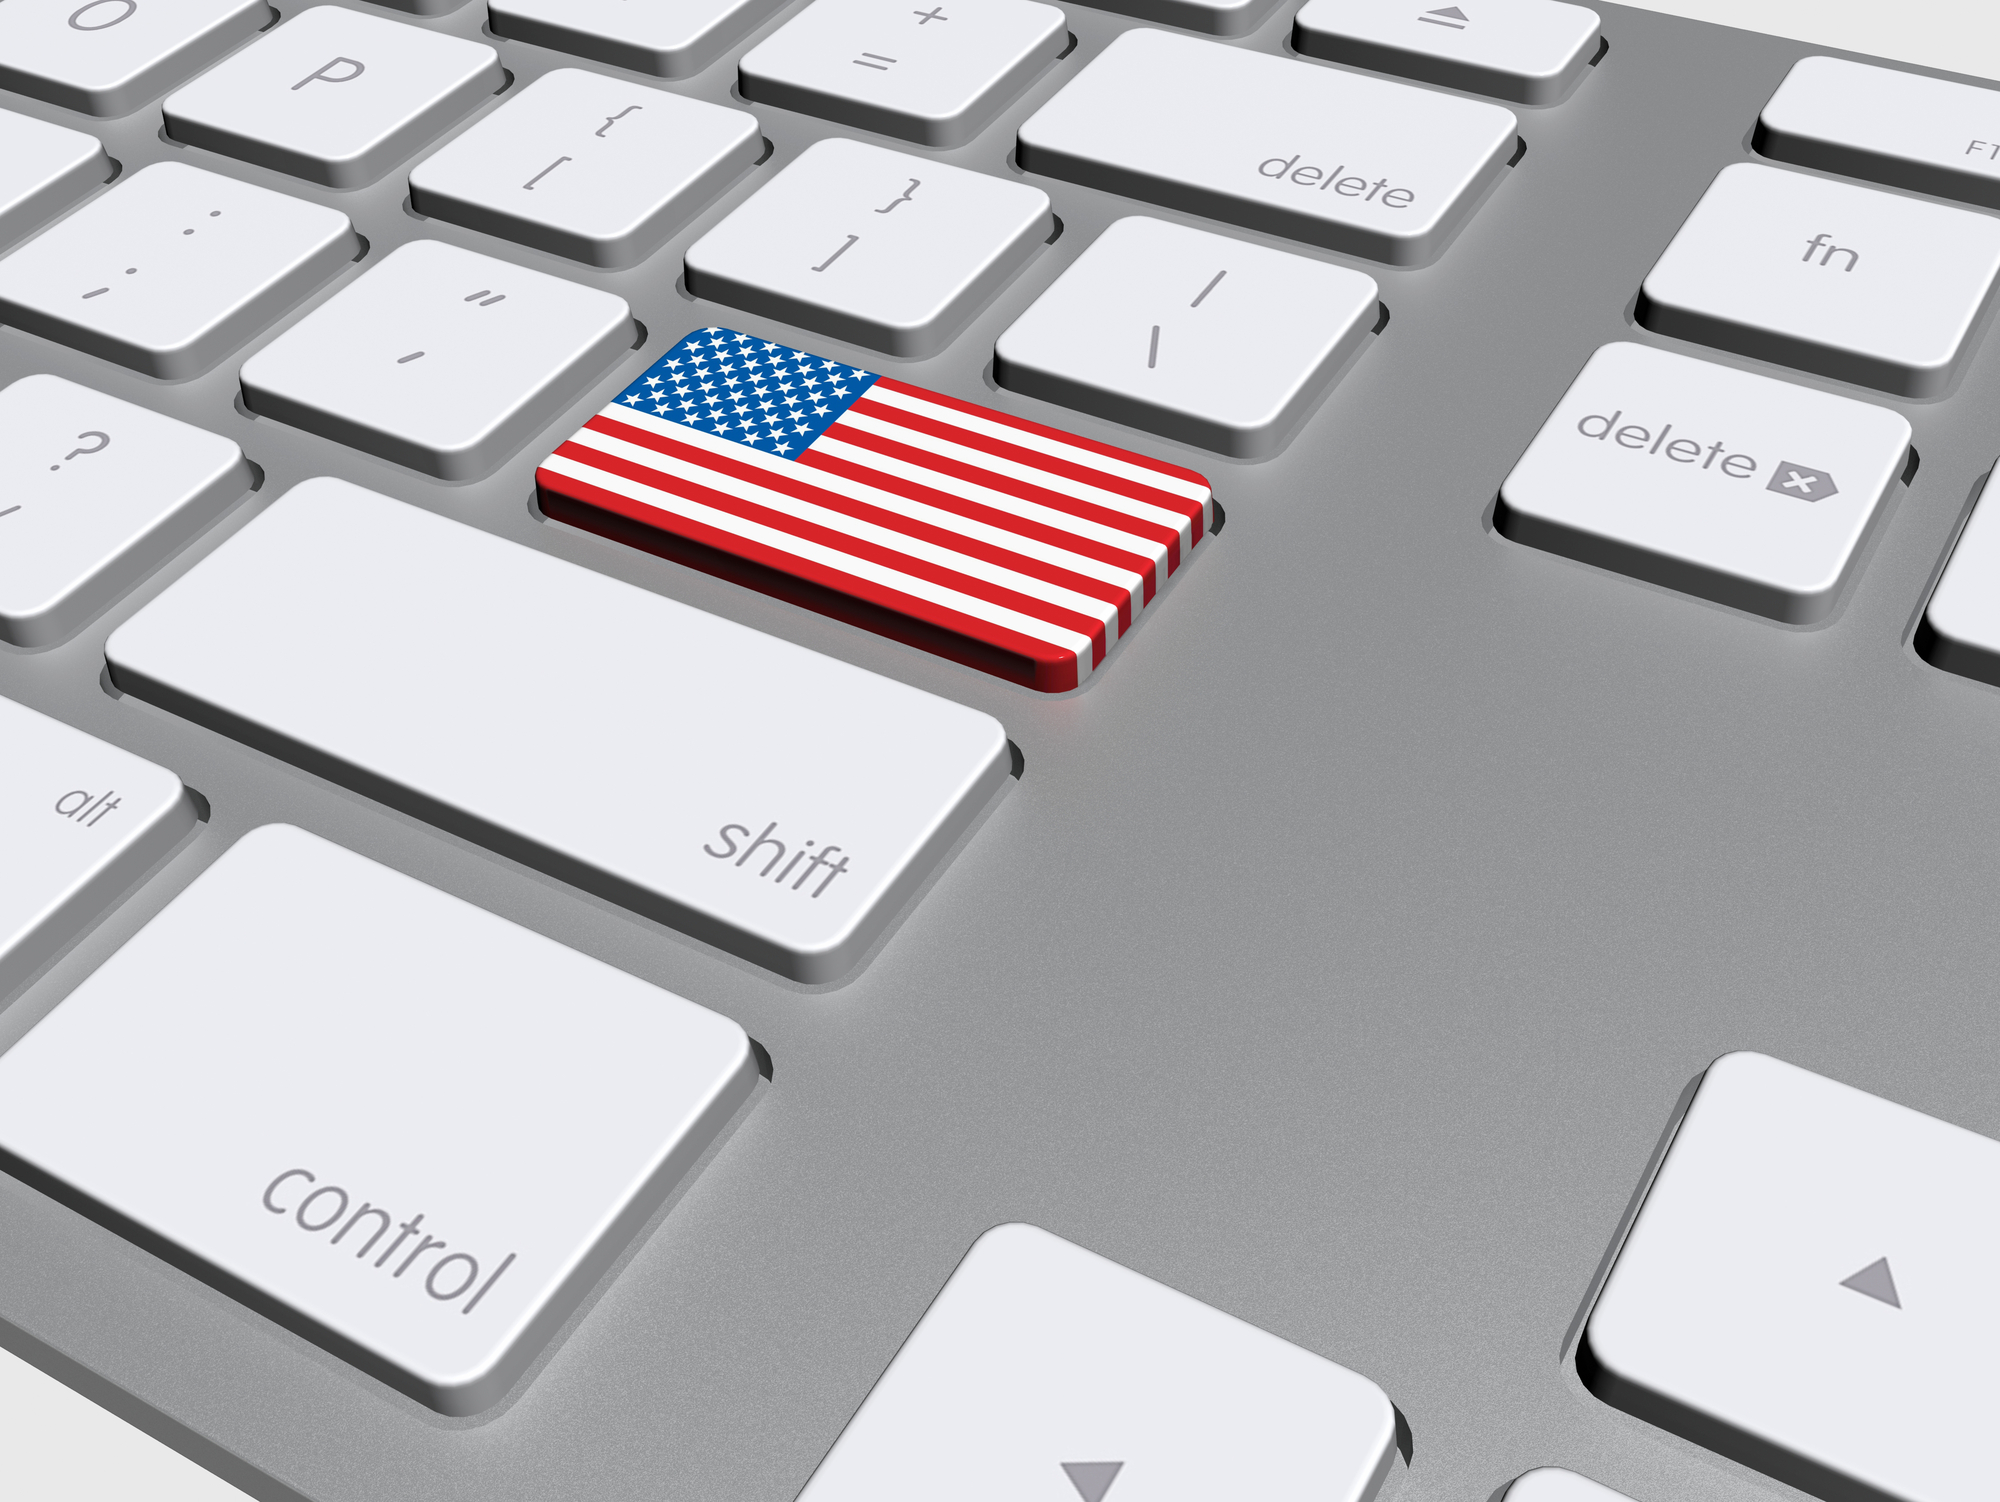 DSGVO Privacy Shield gekippt. Lösungen mit USA